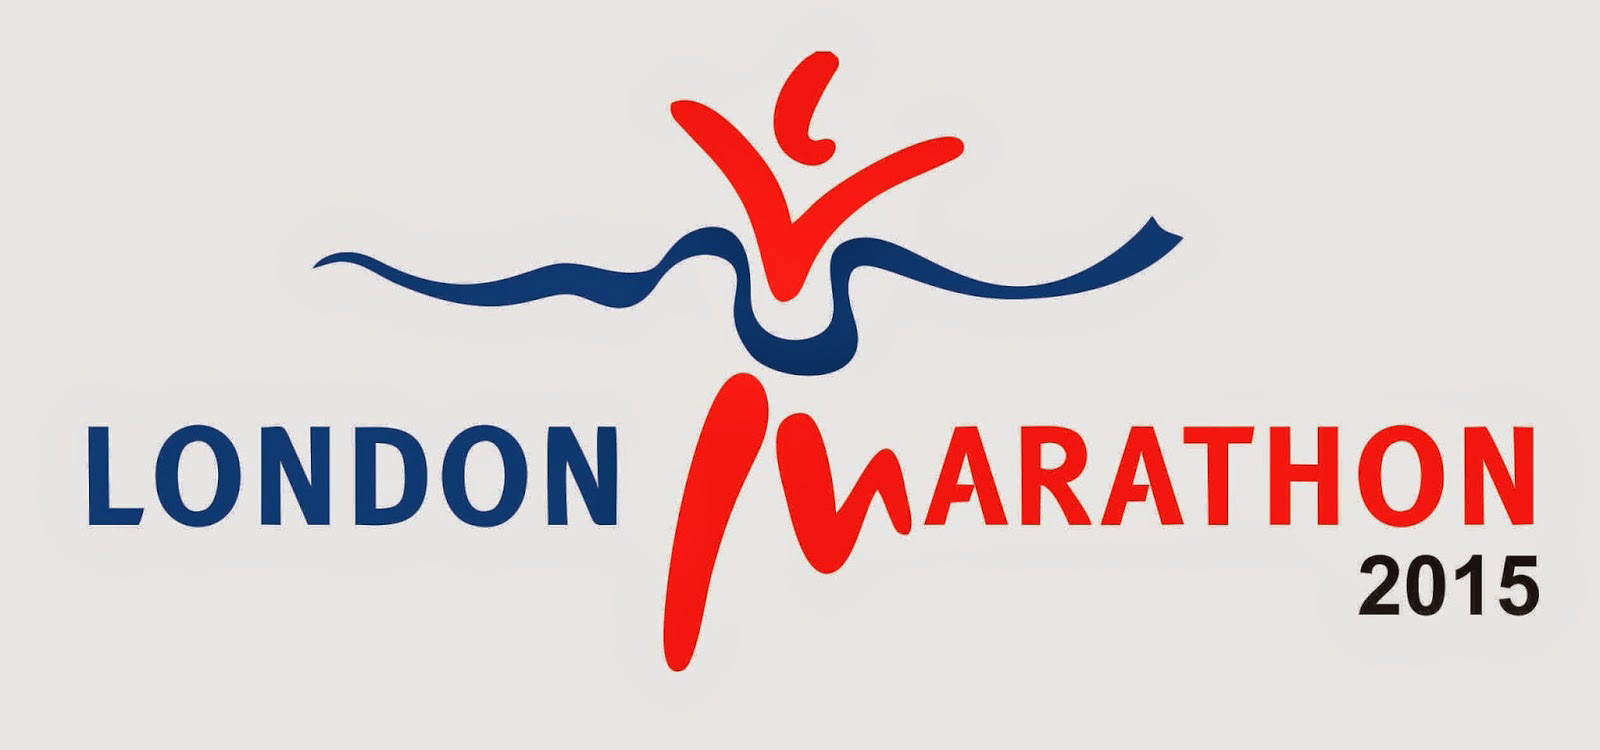 simple photo frame psd rdc7DA